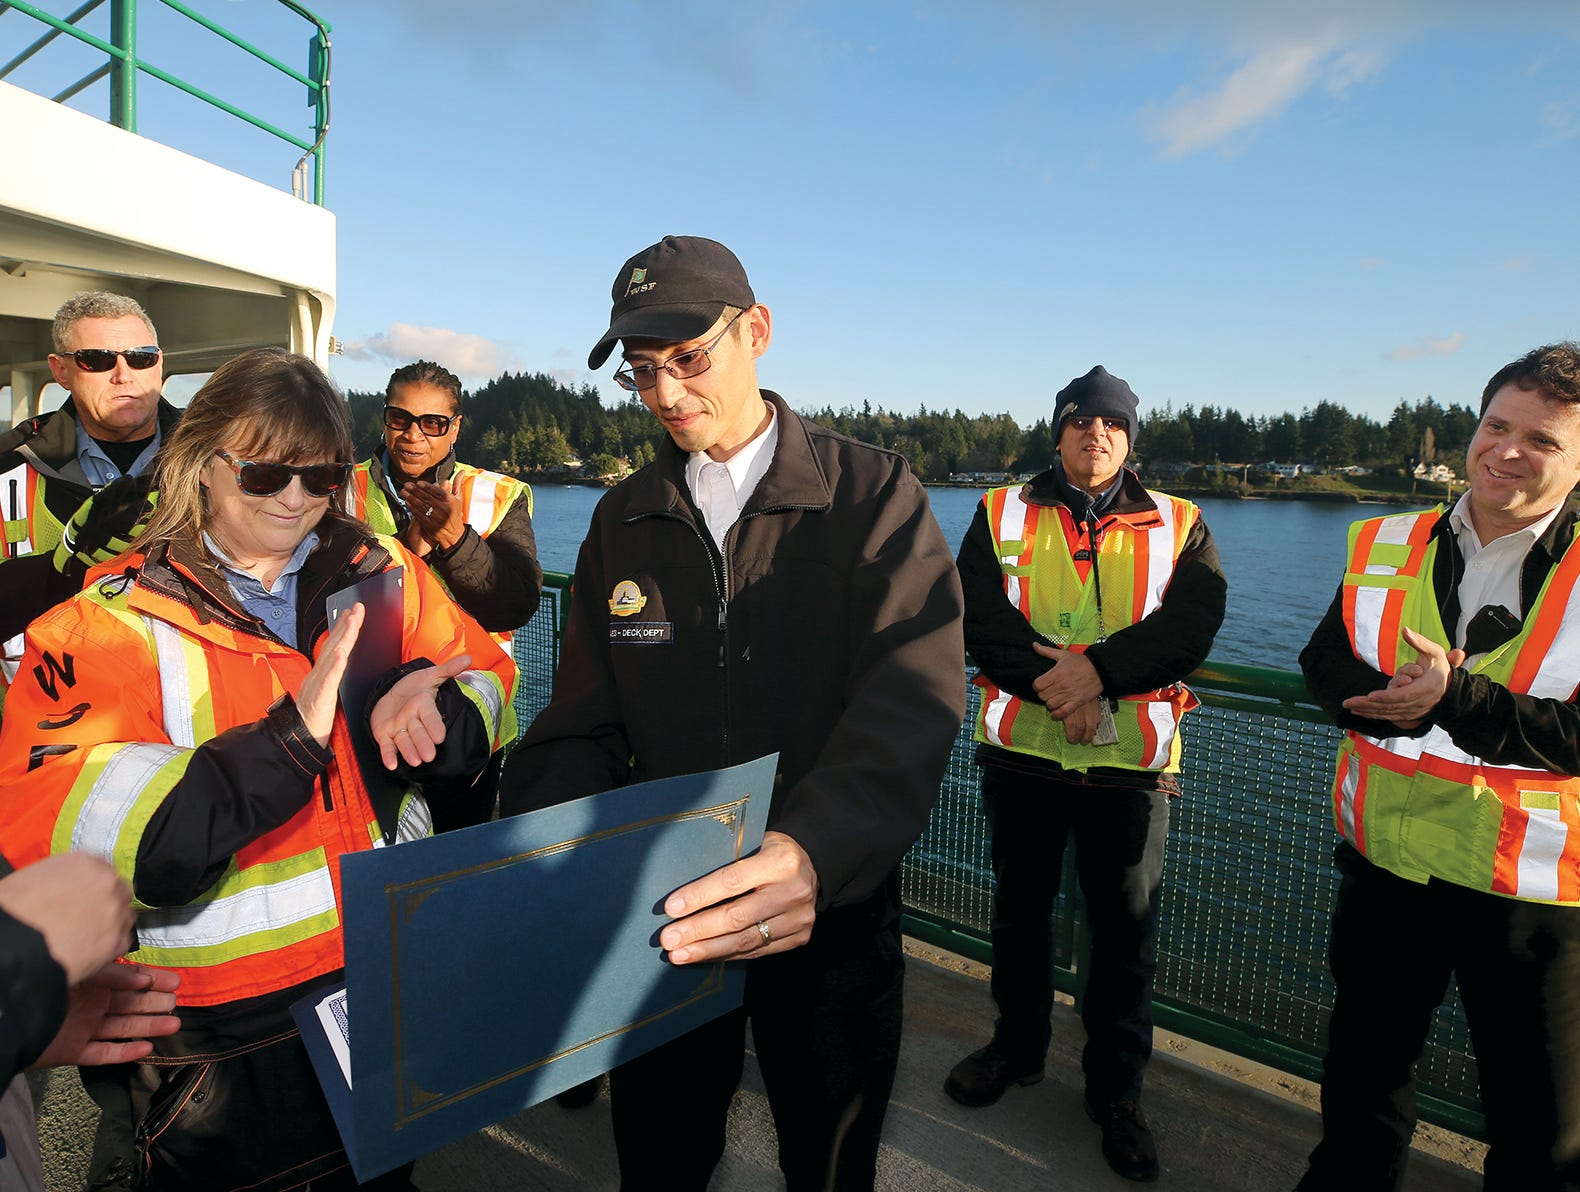 Washington State Ferries workers Donna Phillips, left, of Port Orchard, and James Patheal, center, of Bremerton, were given citations for their bravery on Monday, December 3, 2018. They were two of the Washington State Ferries workers honored Monday for their actions saving a man they found in the ferry lane in Sinclair Inlet in August.